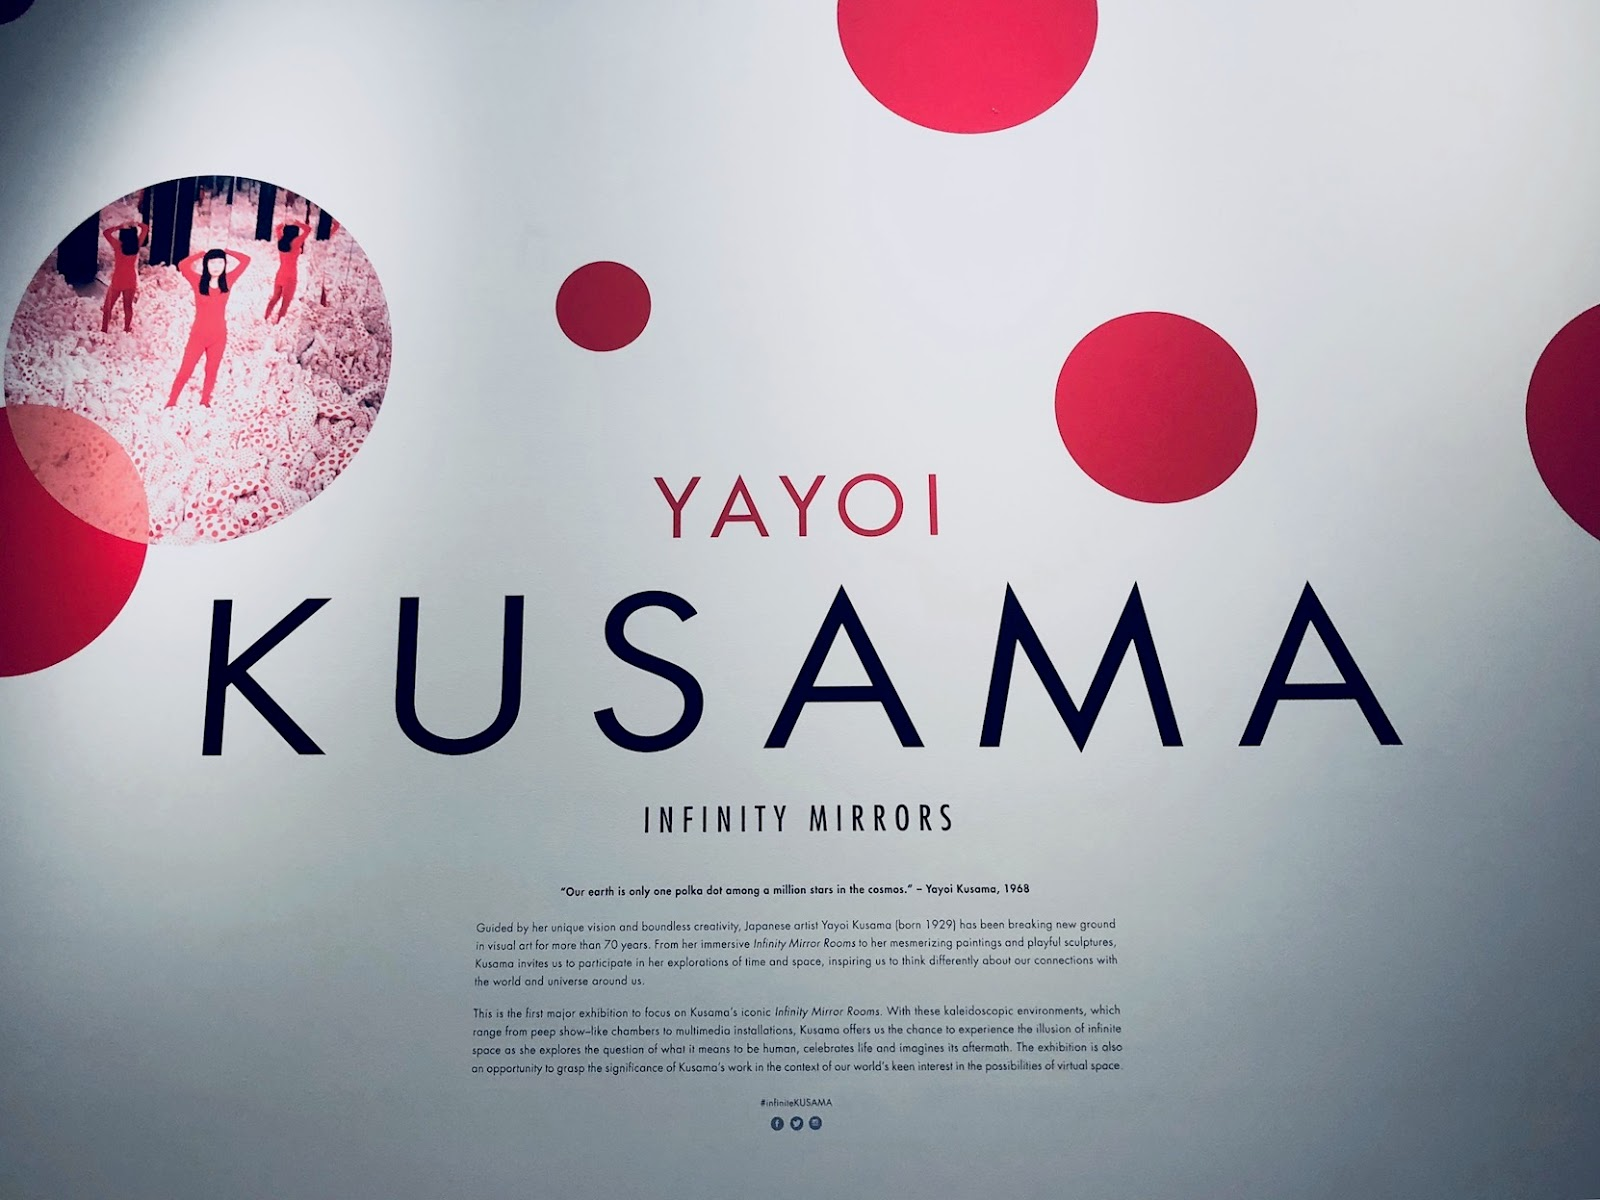 kusama exhibit